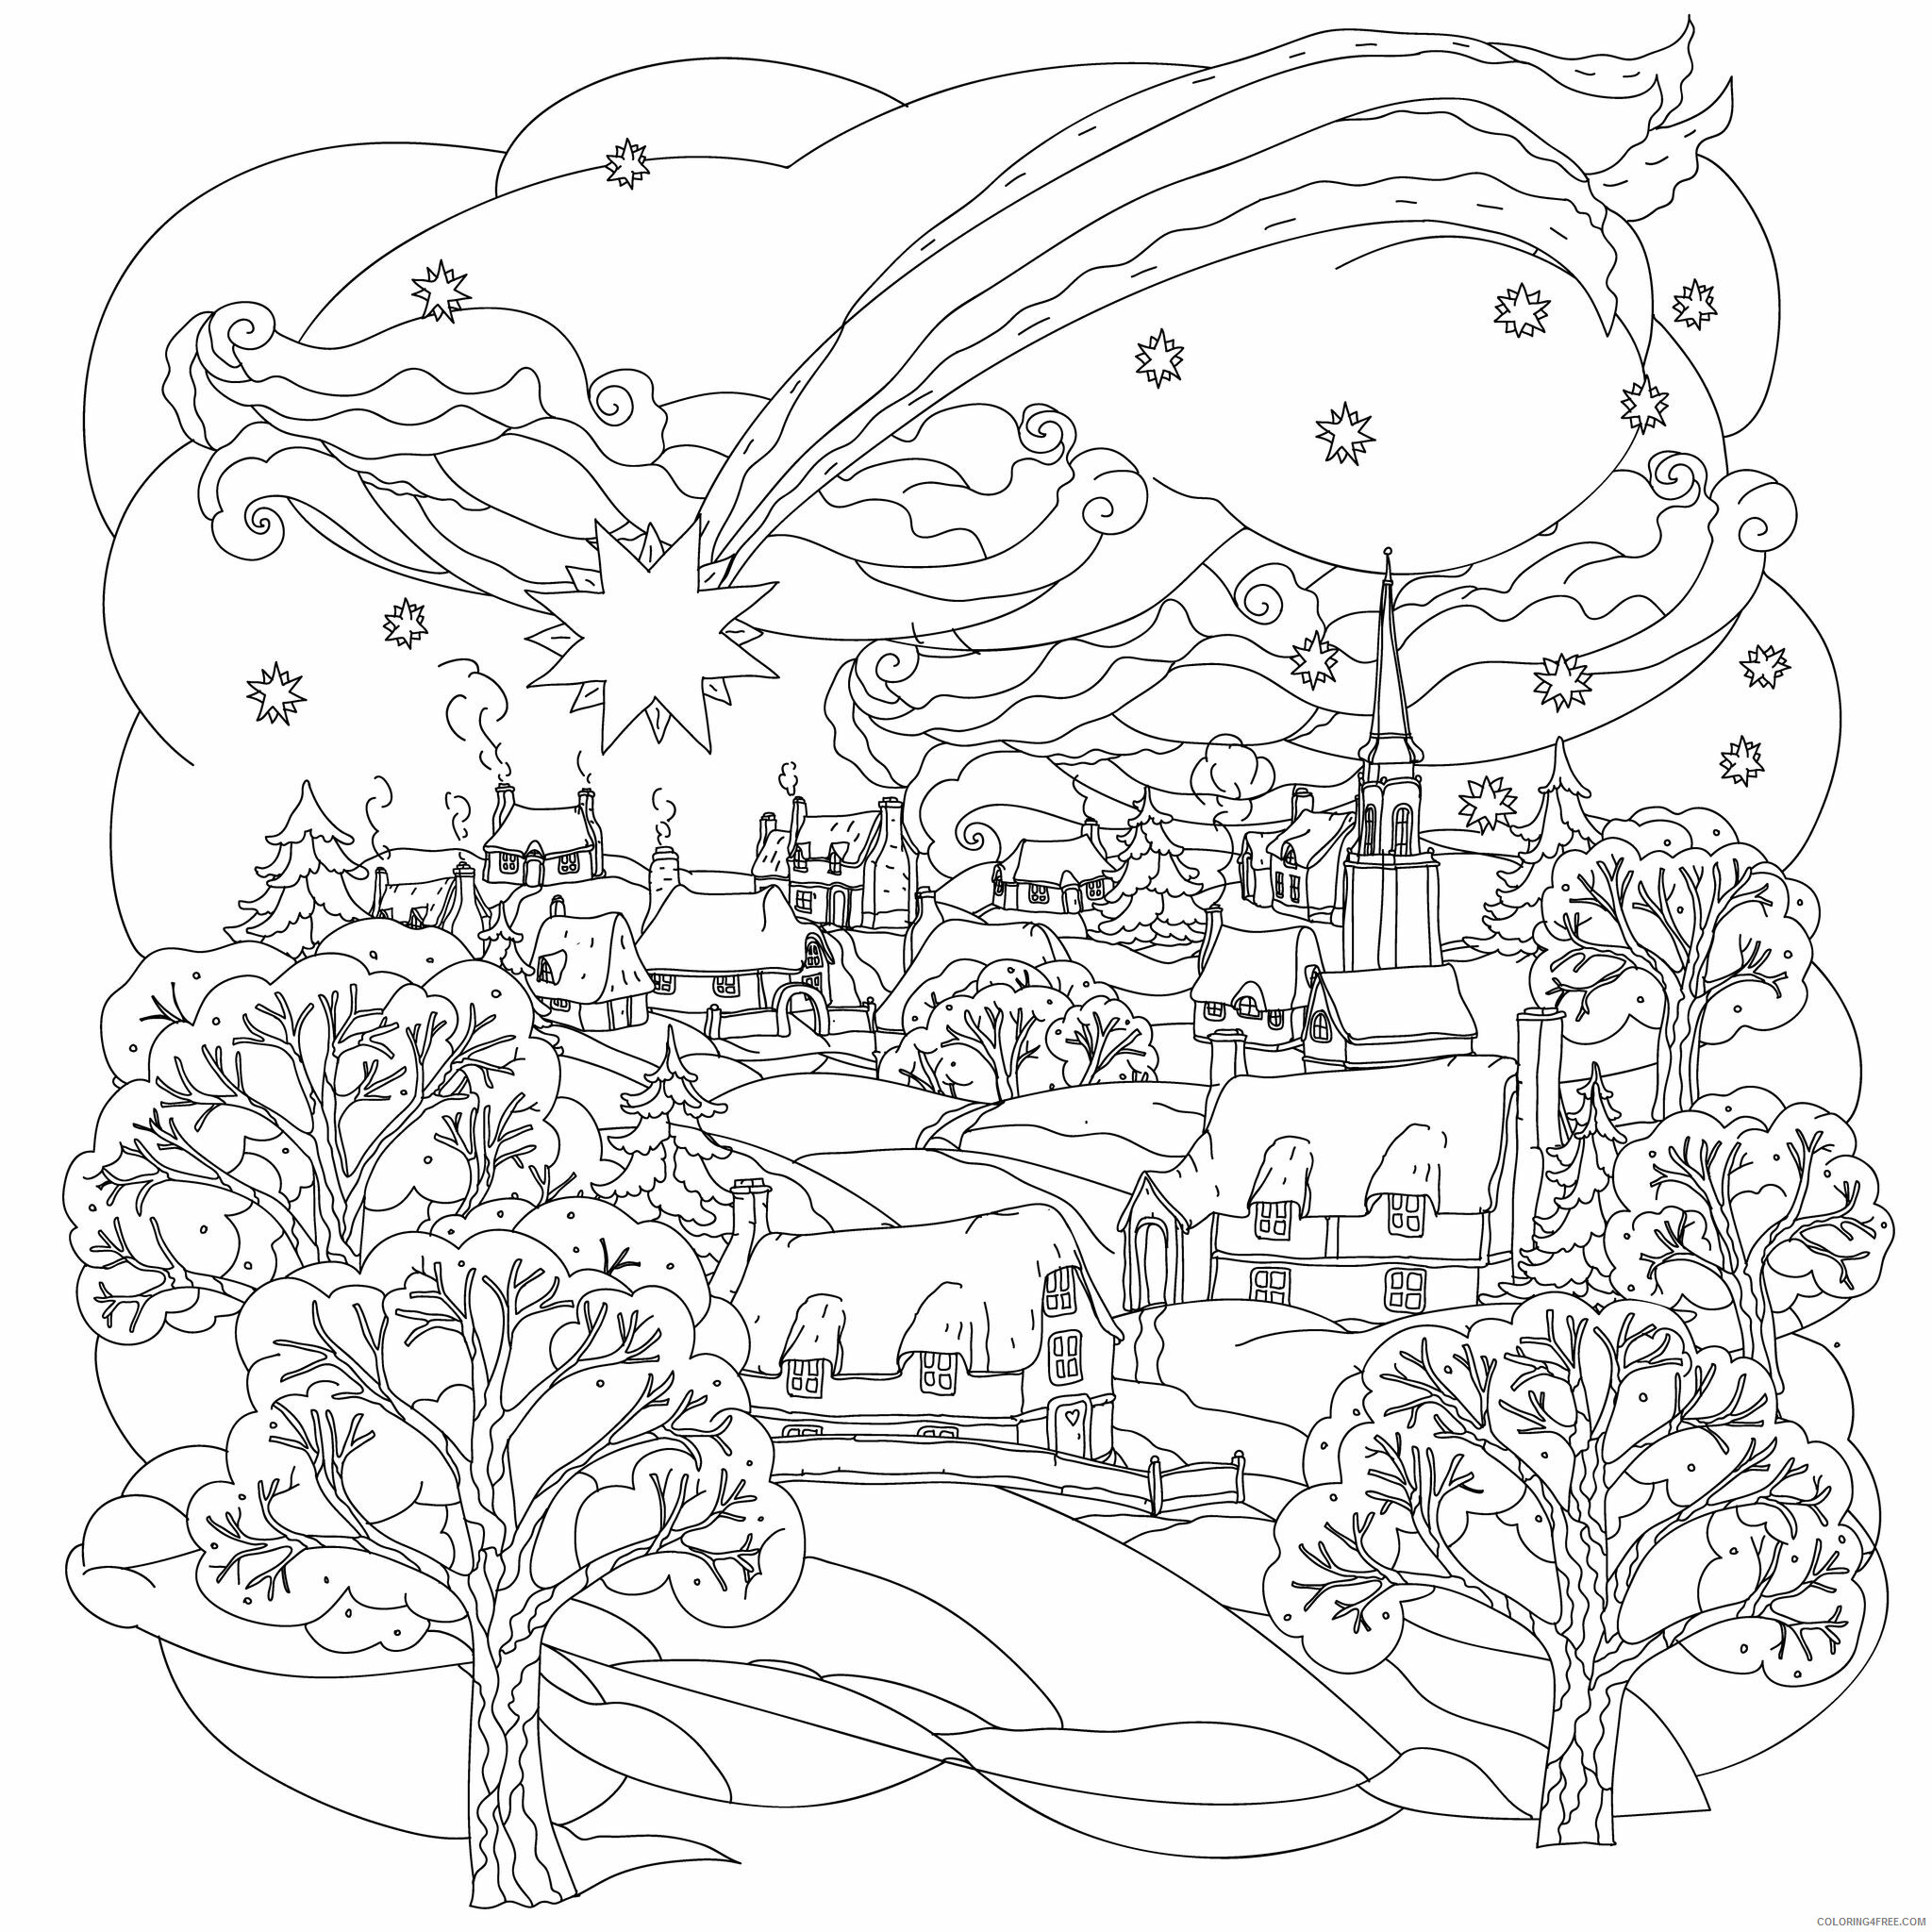 adult christmas coloring winter scene for adults coloring4free universal crayola rainbow coloring pages Winter Scene Coloring Page